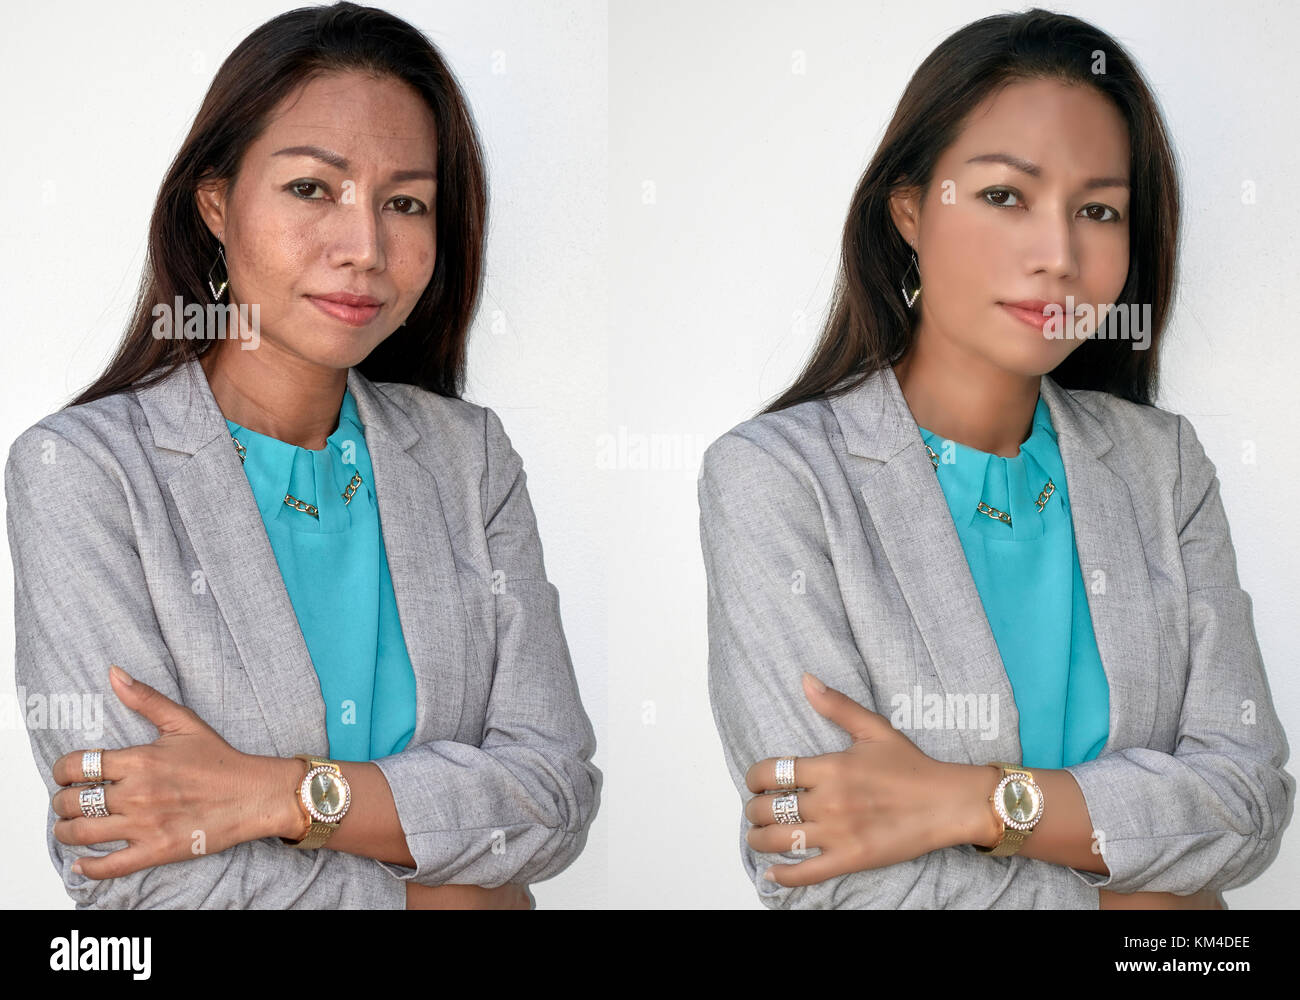 Before and after Photoshop manipulation portrait of a mature 45 year old woman. Digital makeover - Stock Image